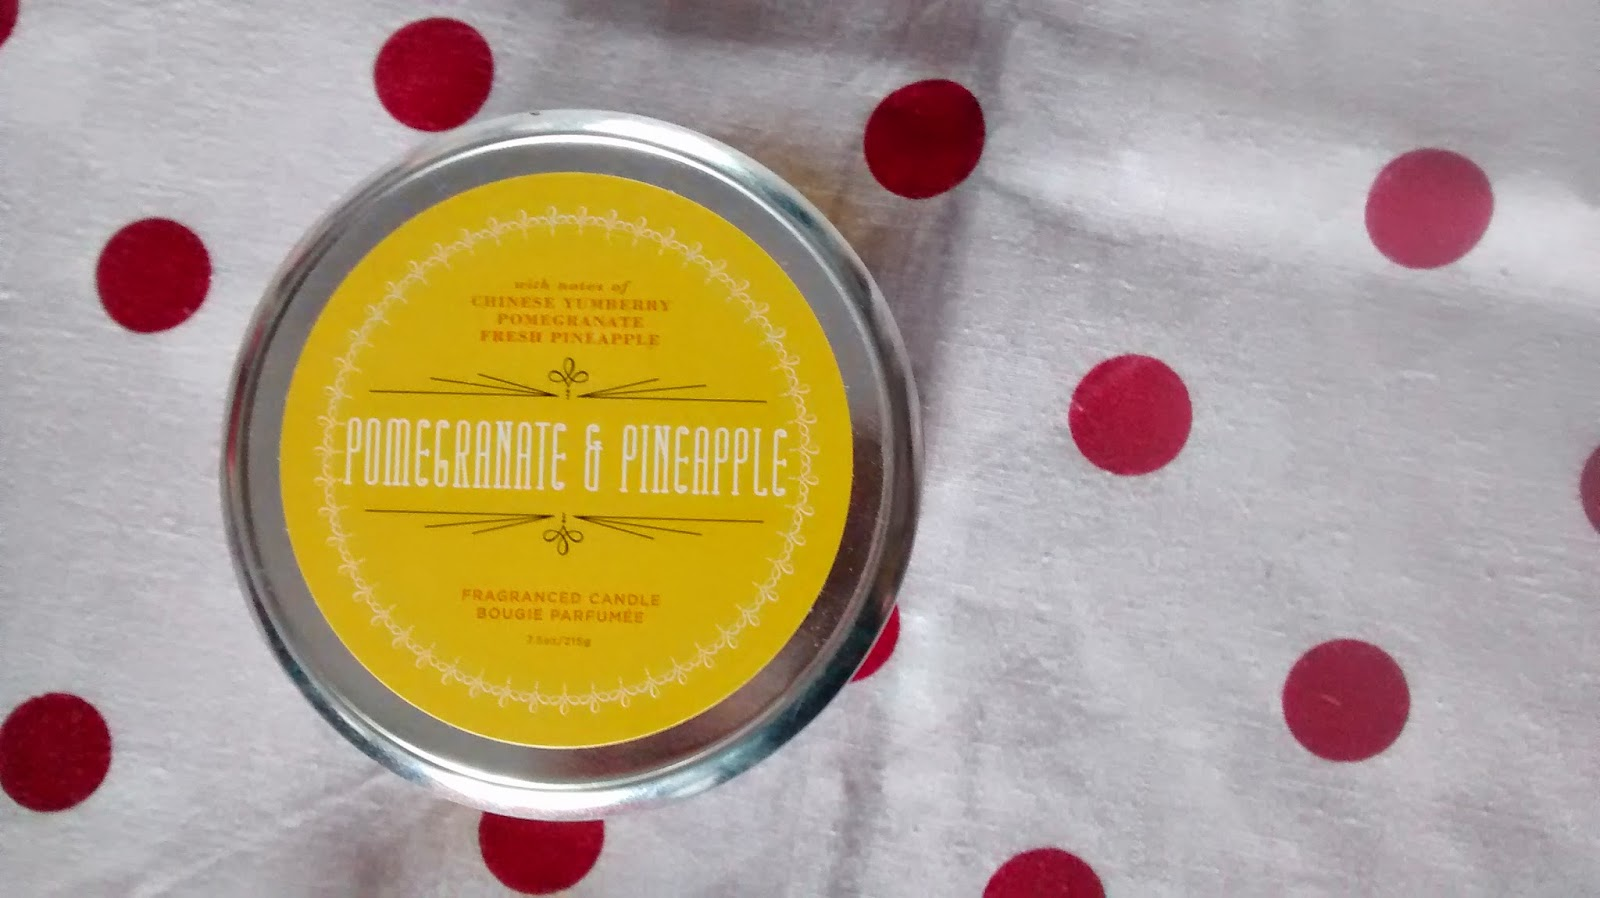 Pomegranate and Pineapple Candle